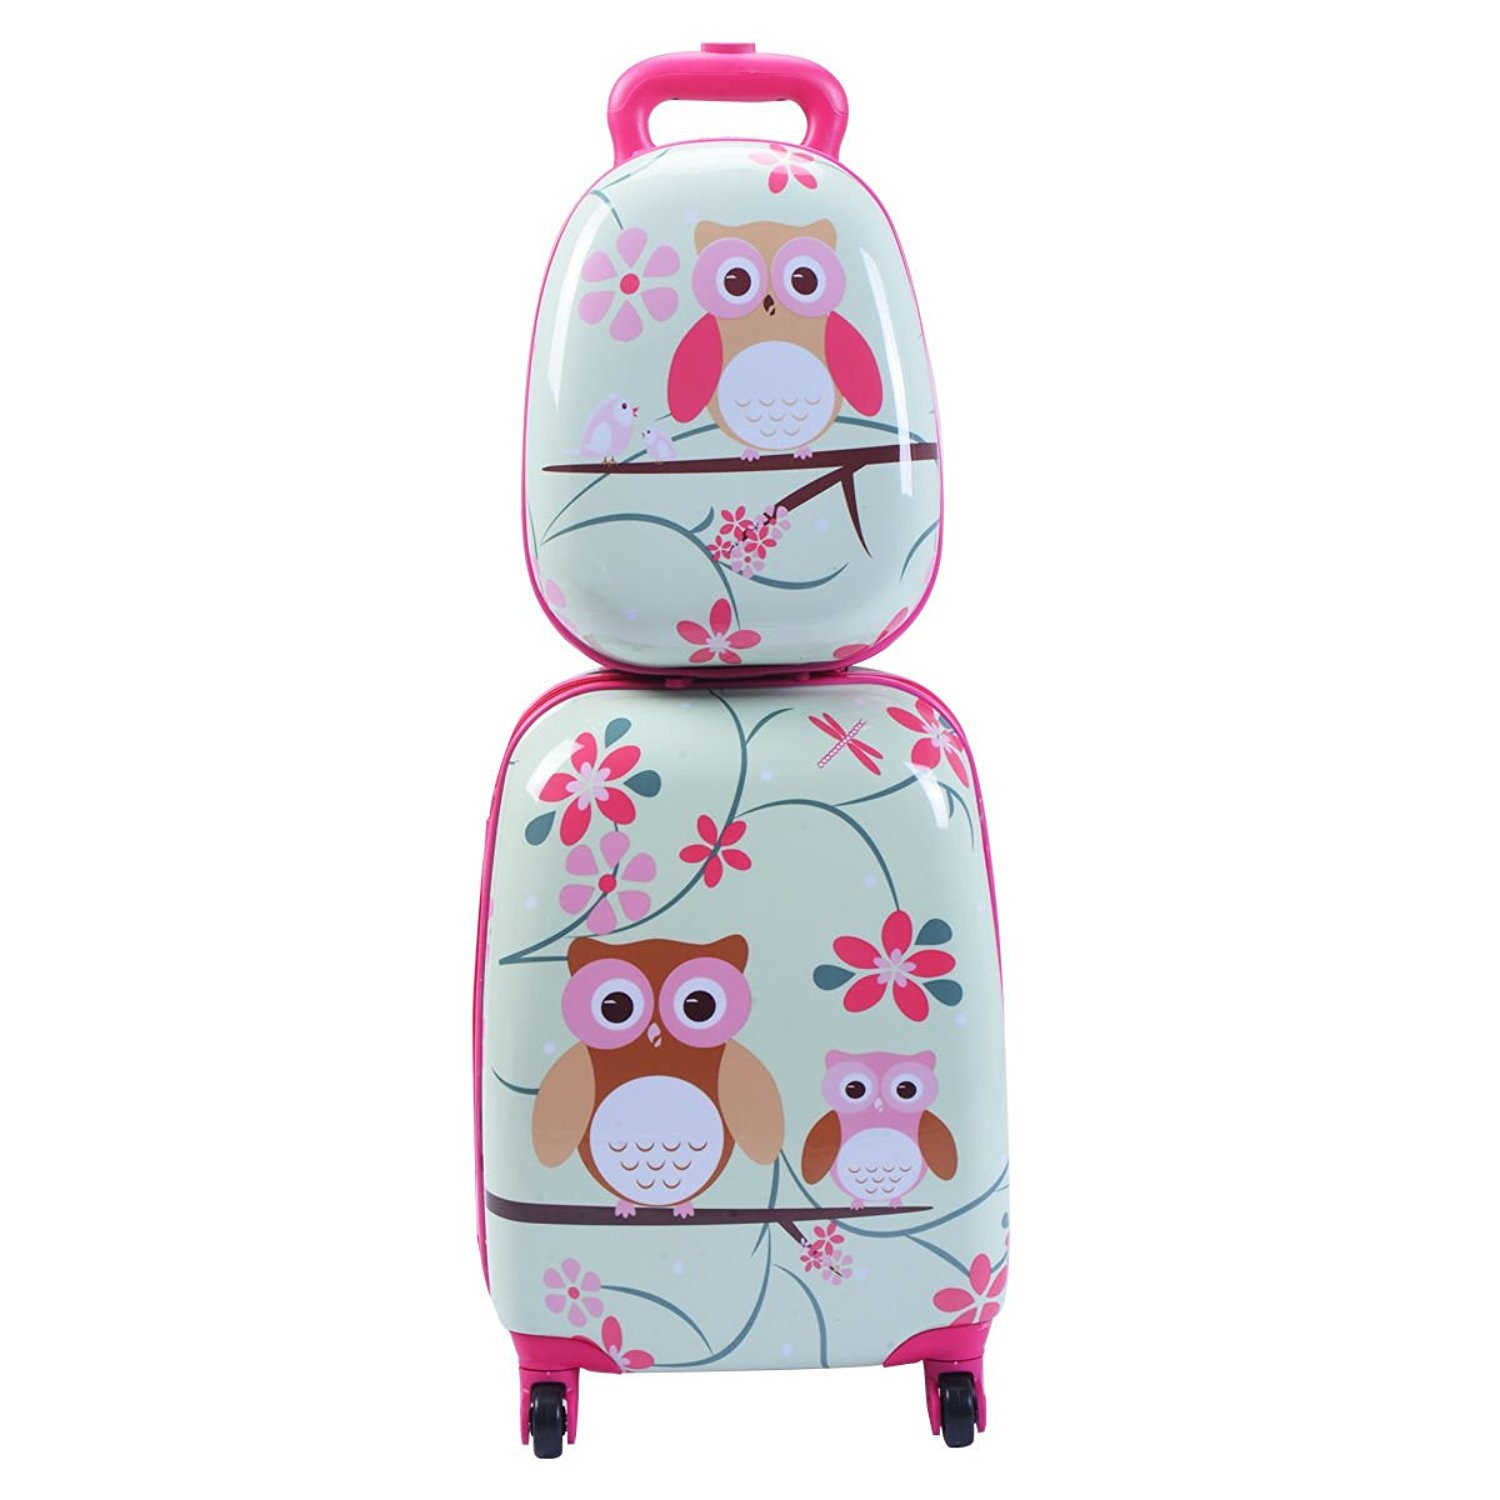 MOREFUN 2 Pcs Kids Travel Luggage Set 18'' Carry on Luggage and 13'' Backpack Owl